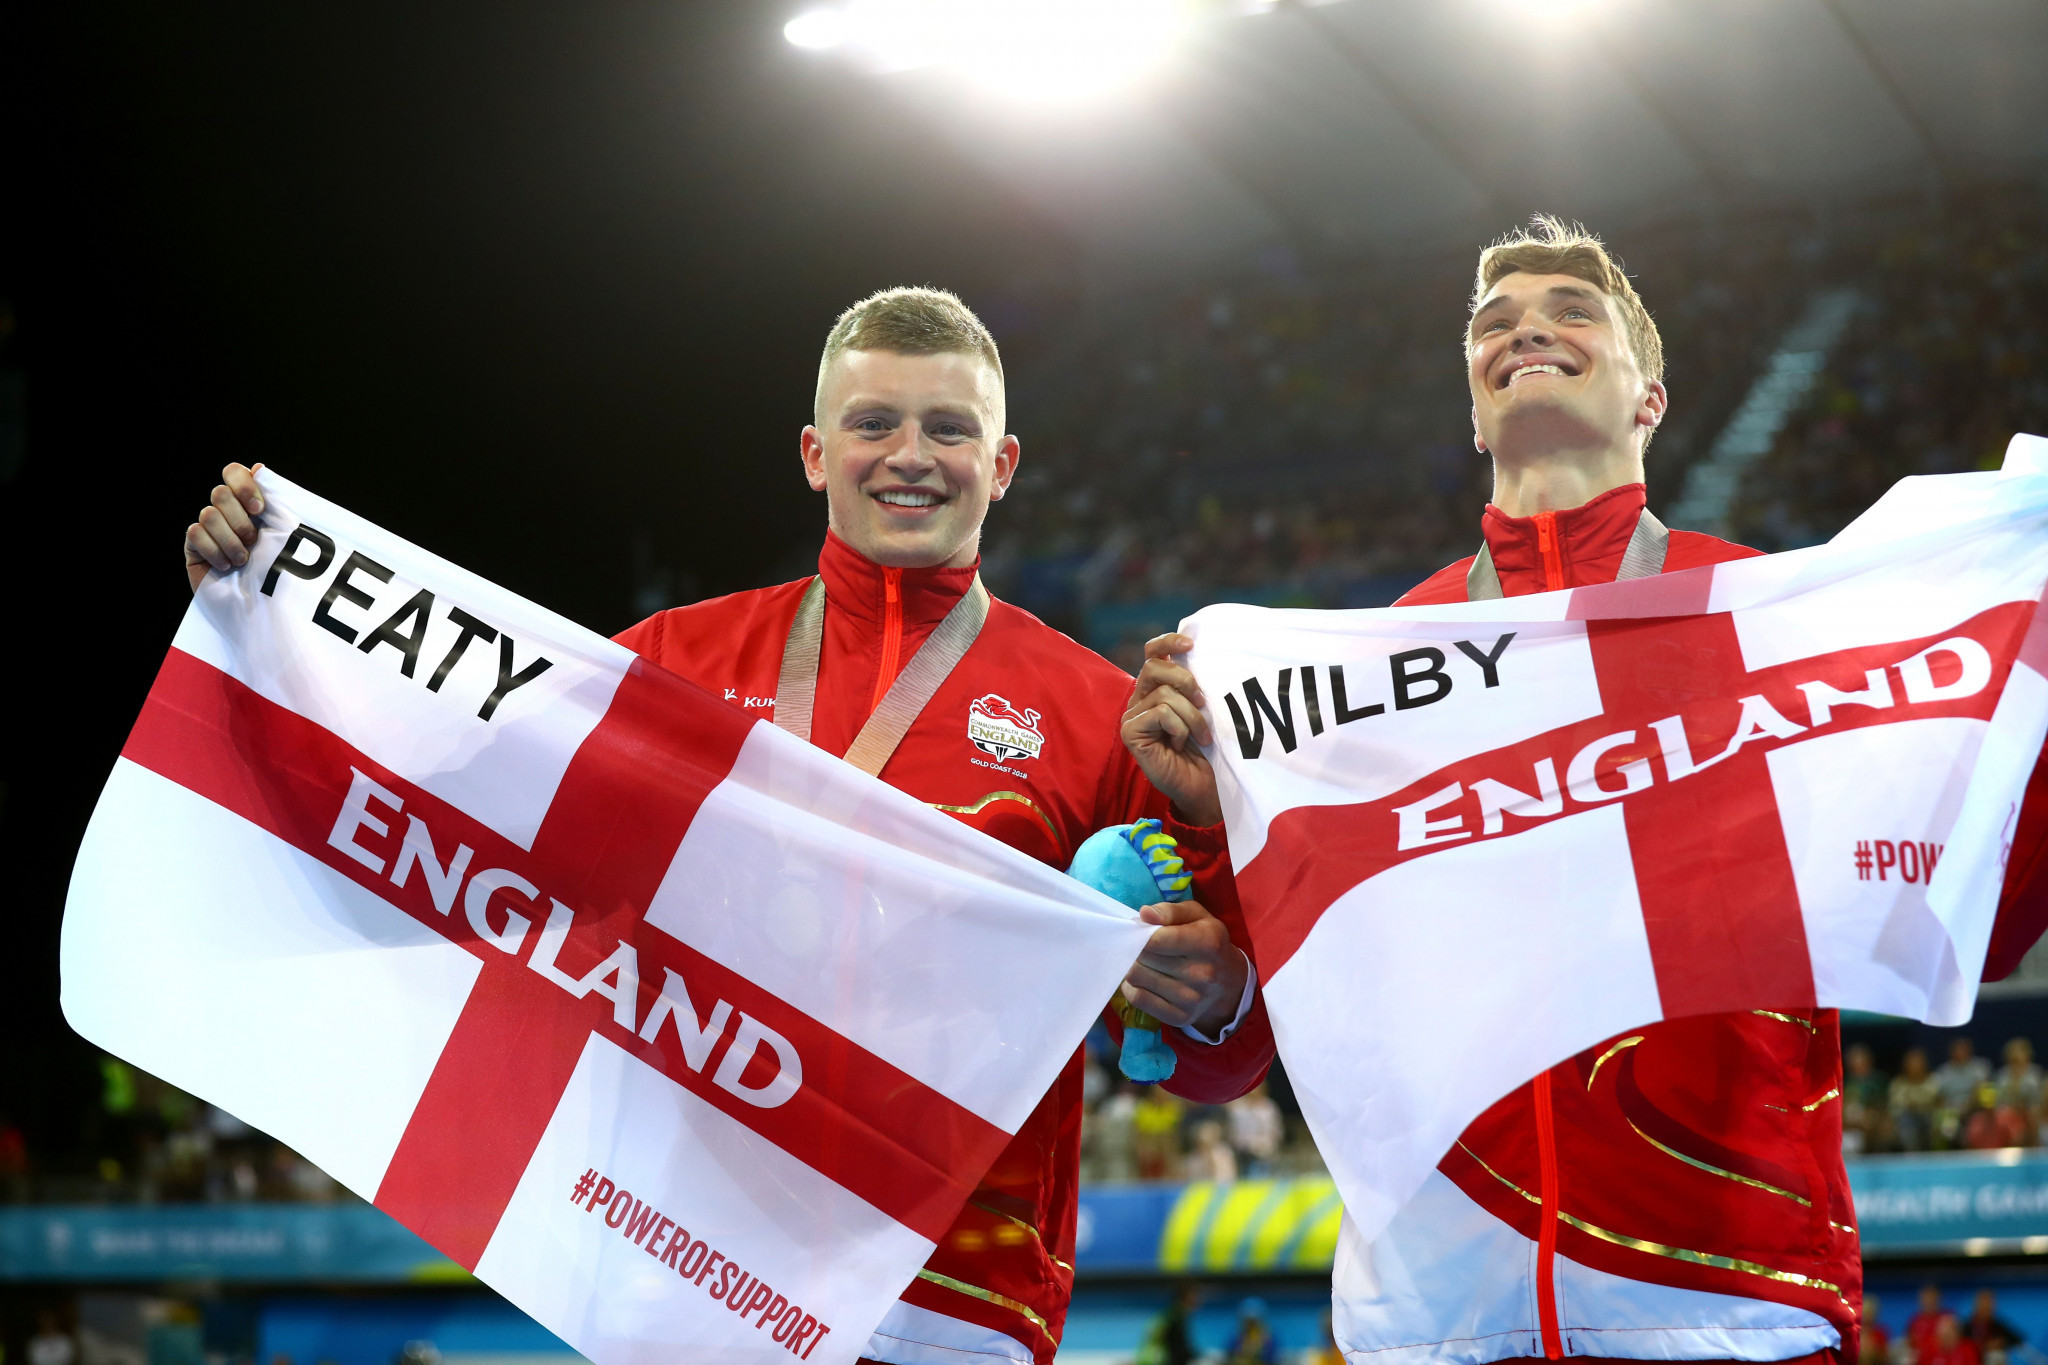 Swim England names larger-than-normal squad to prepare for Birmingham 2022